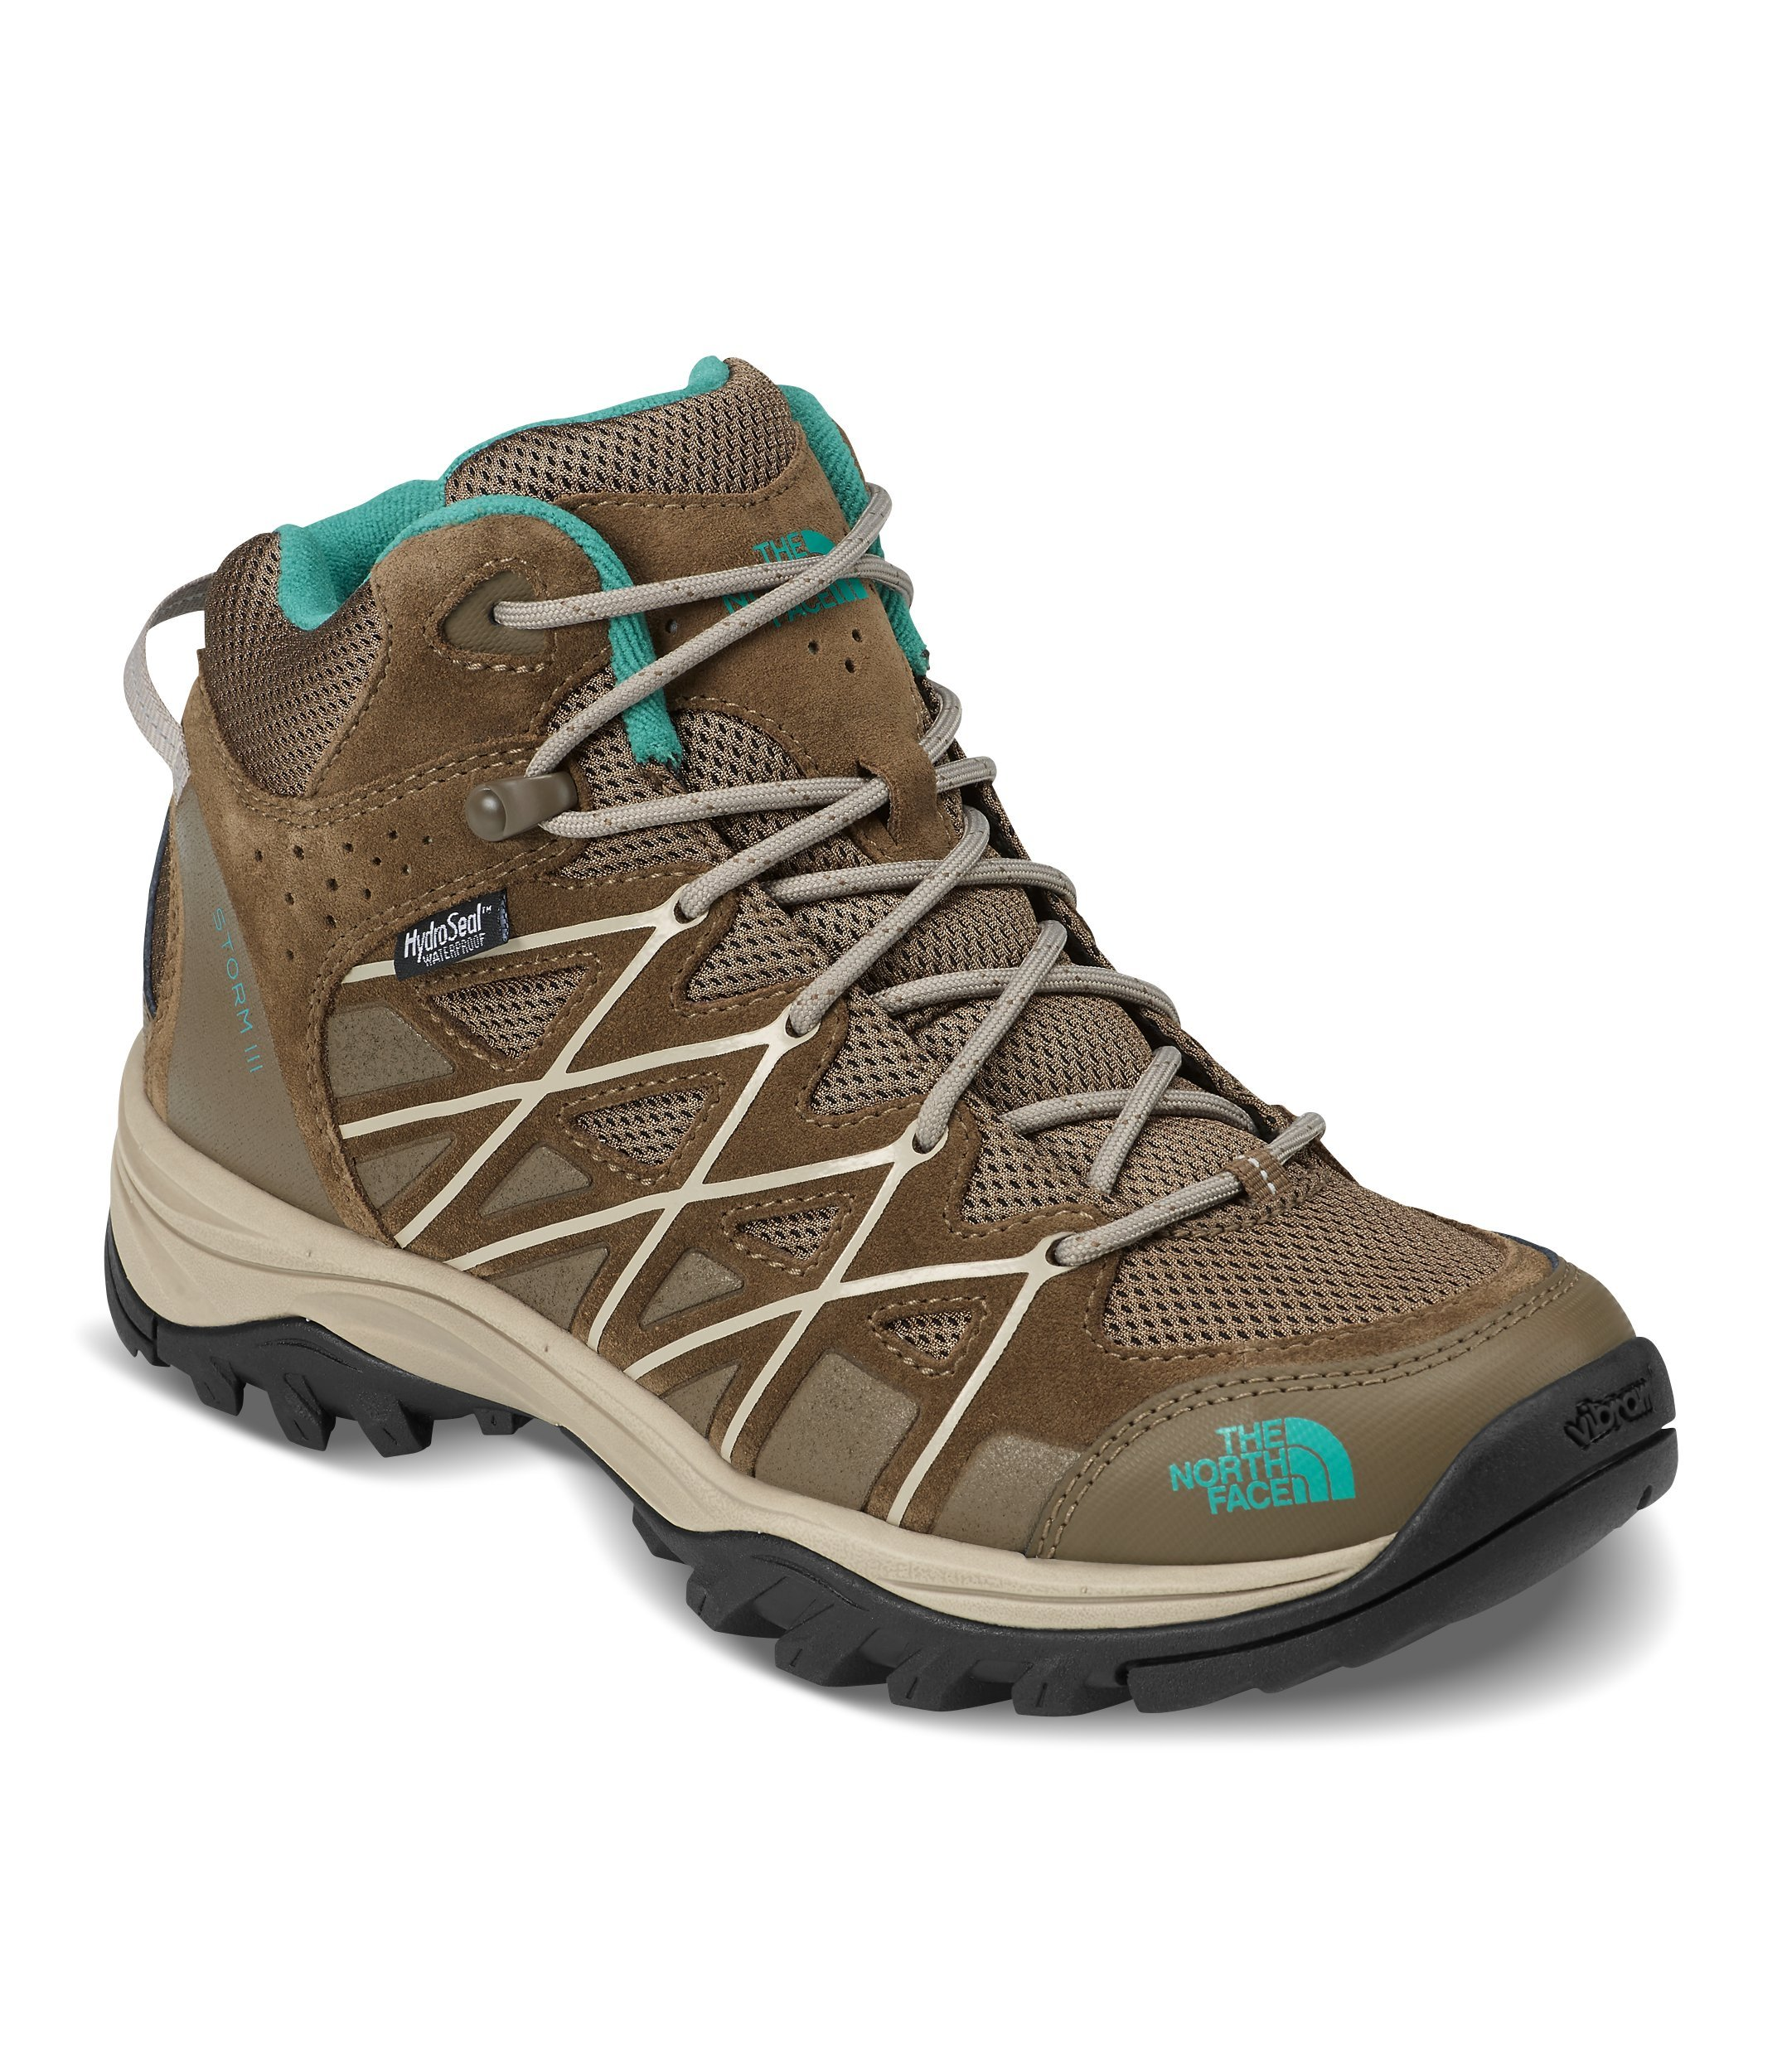 The North Face Women's Storm III Mid Waterproof Hiking Shoes - Cub Brown and Crockery Beige - 7.5